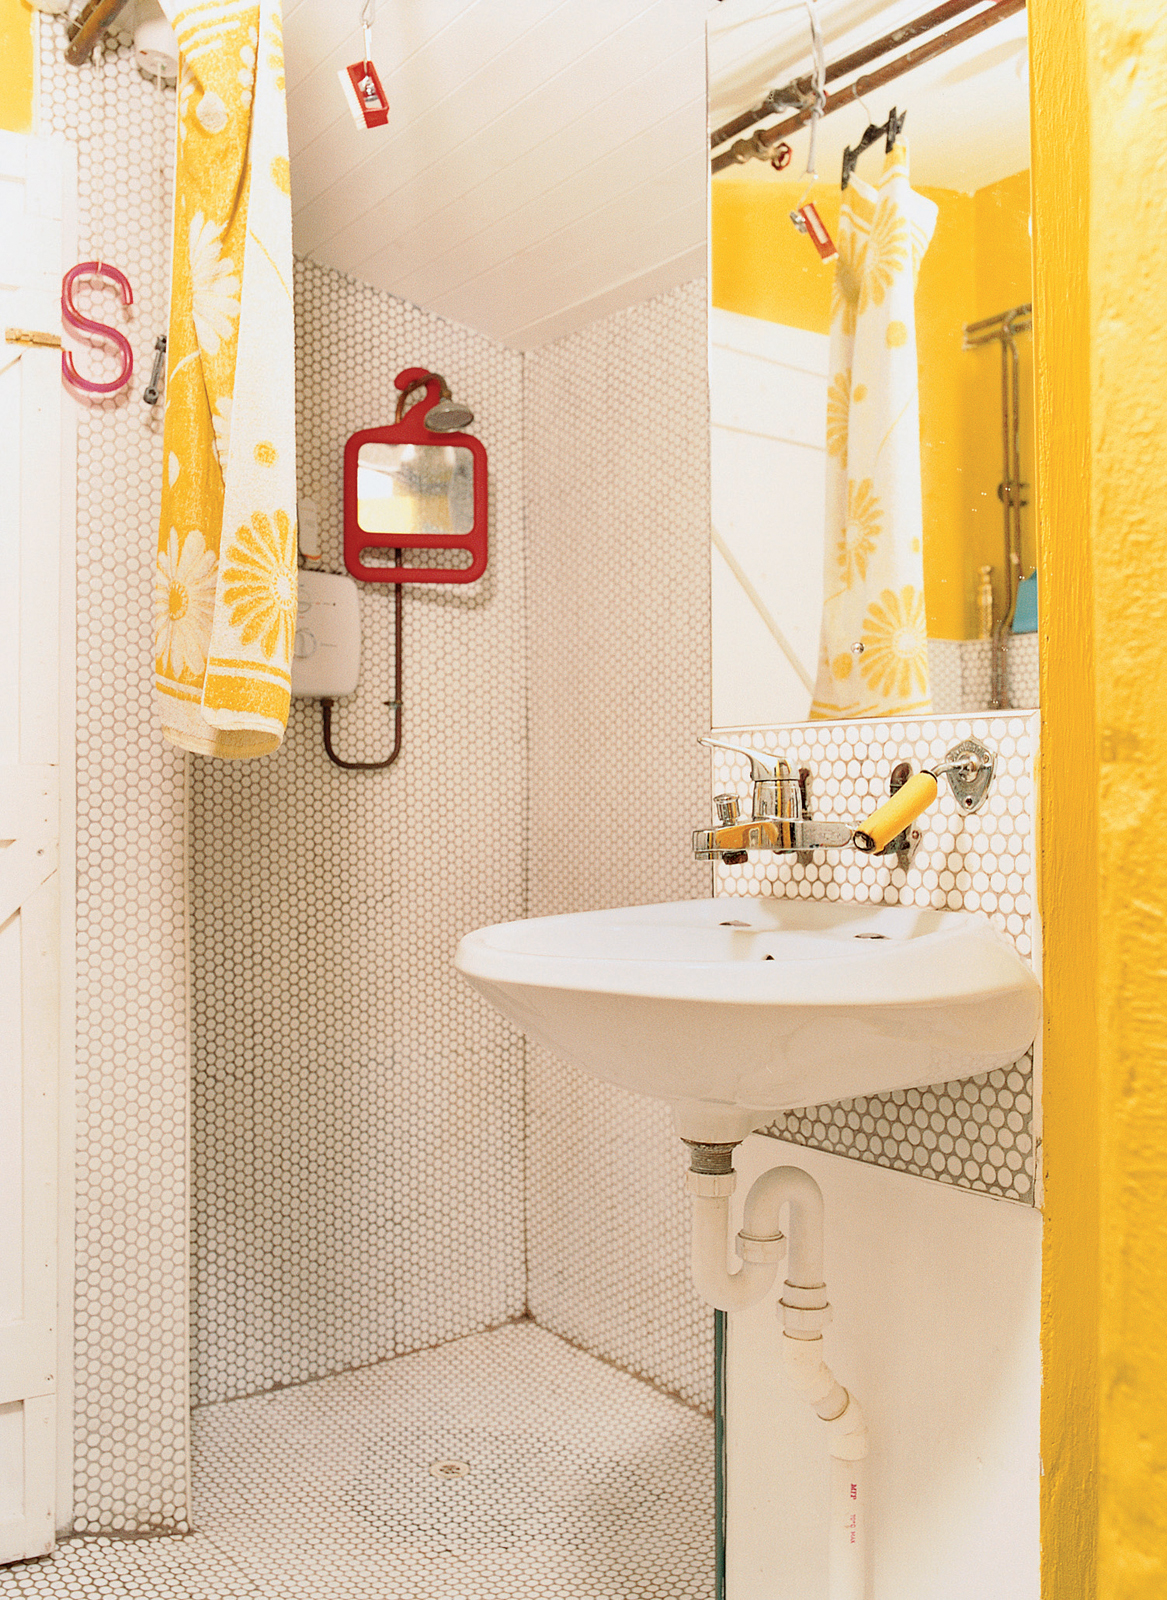 Hexagonal tile covers the wall and floor in the bathroom.